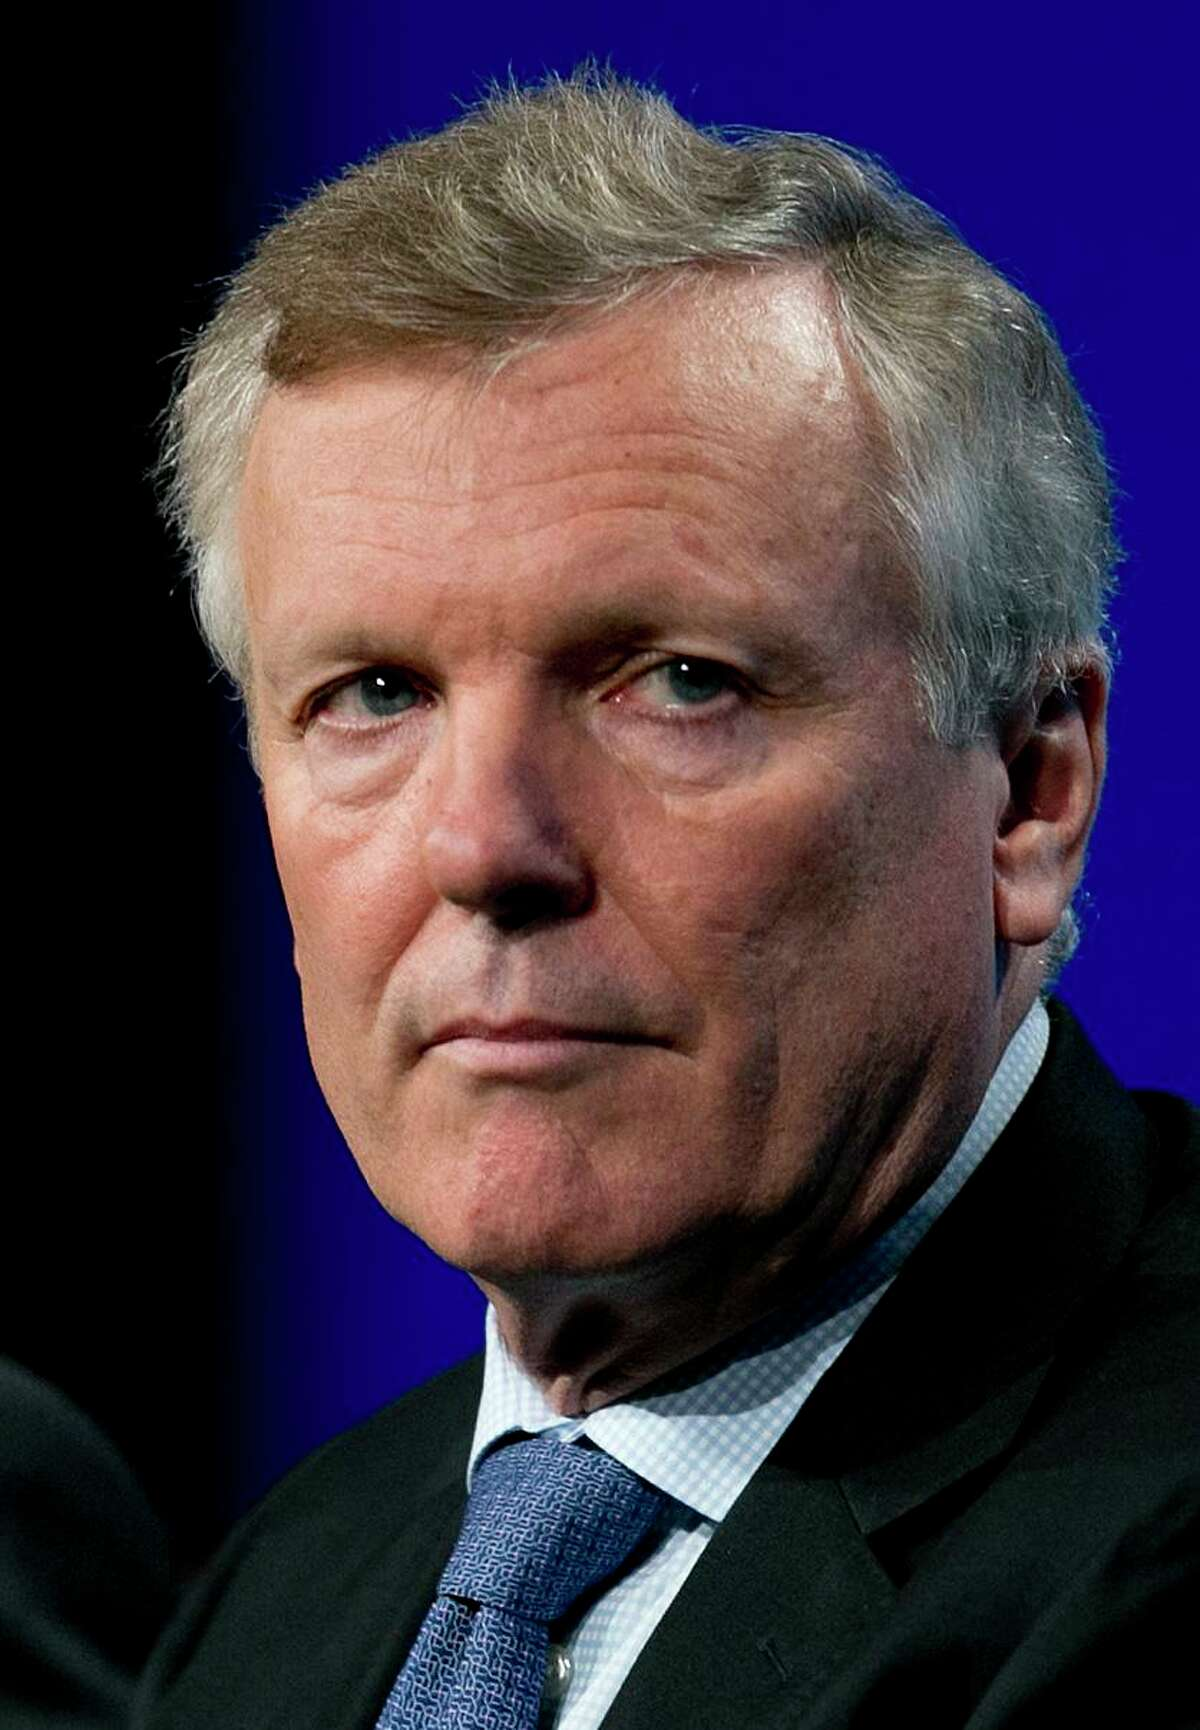 Tom Rutledge, CEO and chairman of Charter Communications, has had his contract extended to the end of 2024.